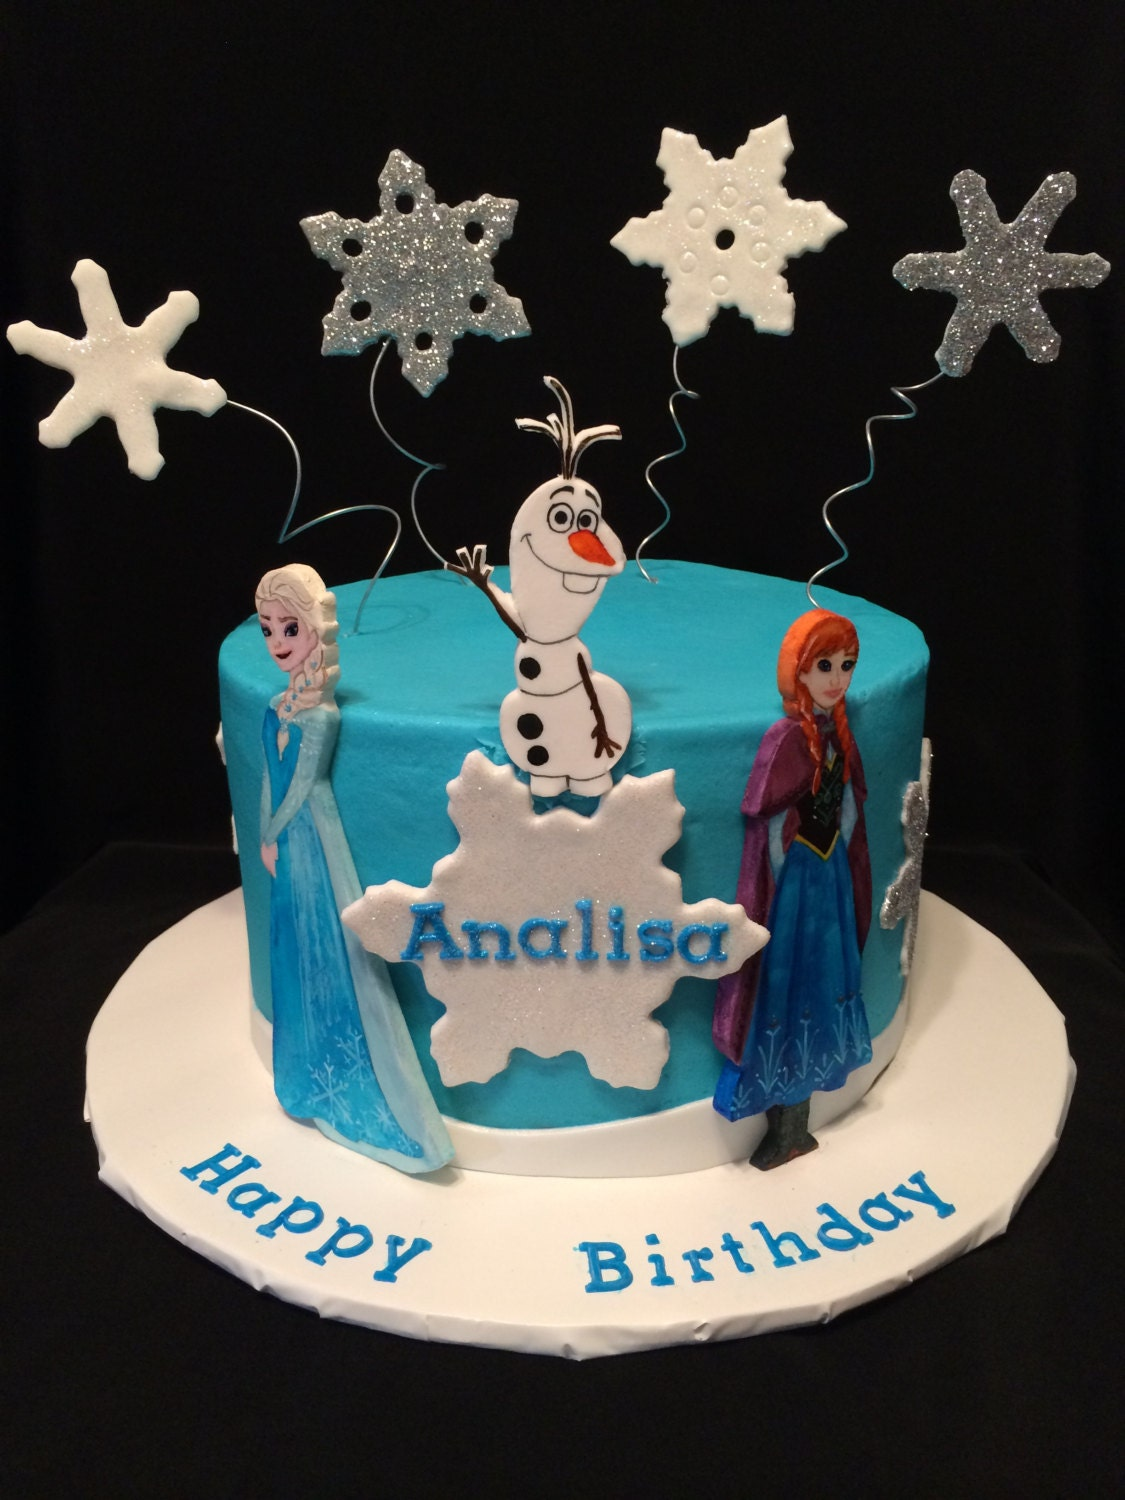 Etsy Frozen Cake Decorations : Elsa & Olaf Hand Painted Flat Fondant Cake Toppers For Luz